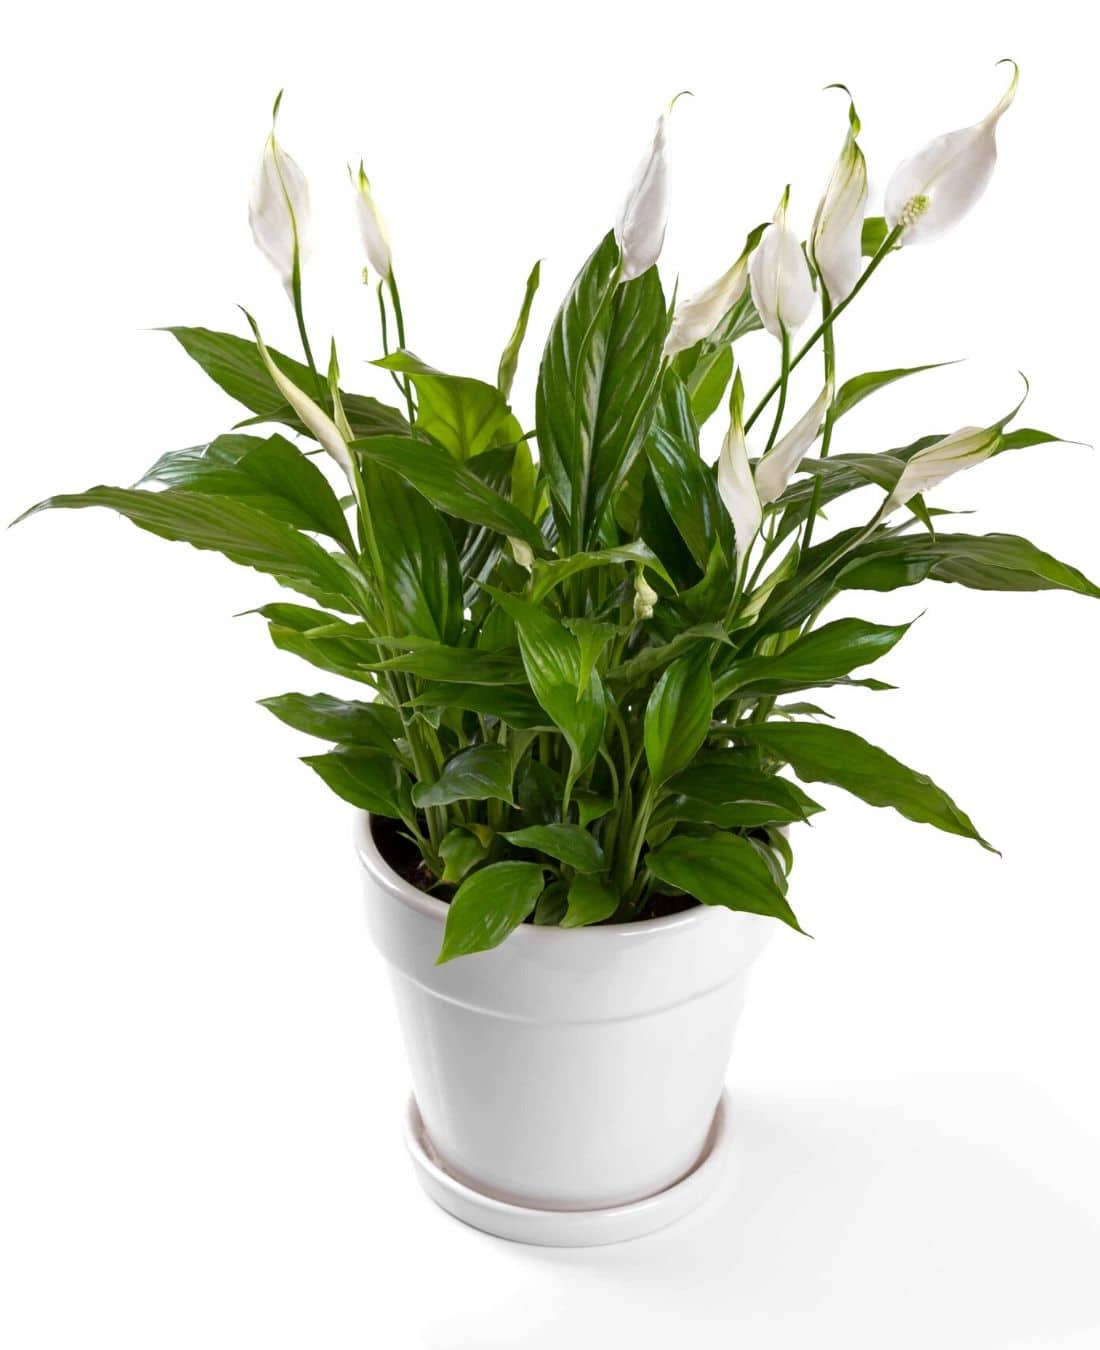 Office Desk Plants | Office Plants | Benefits Of Plants In The Office | ImpeccaBuild 6